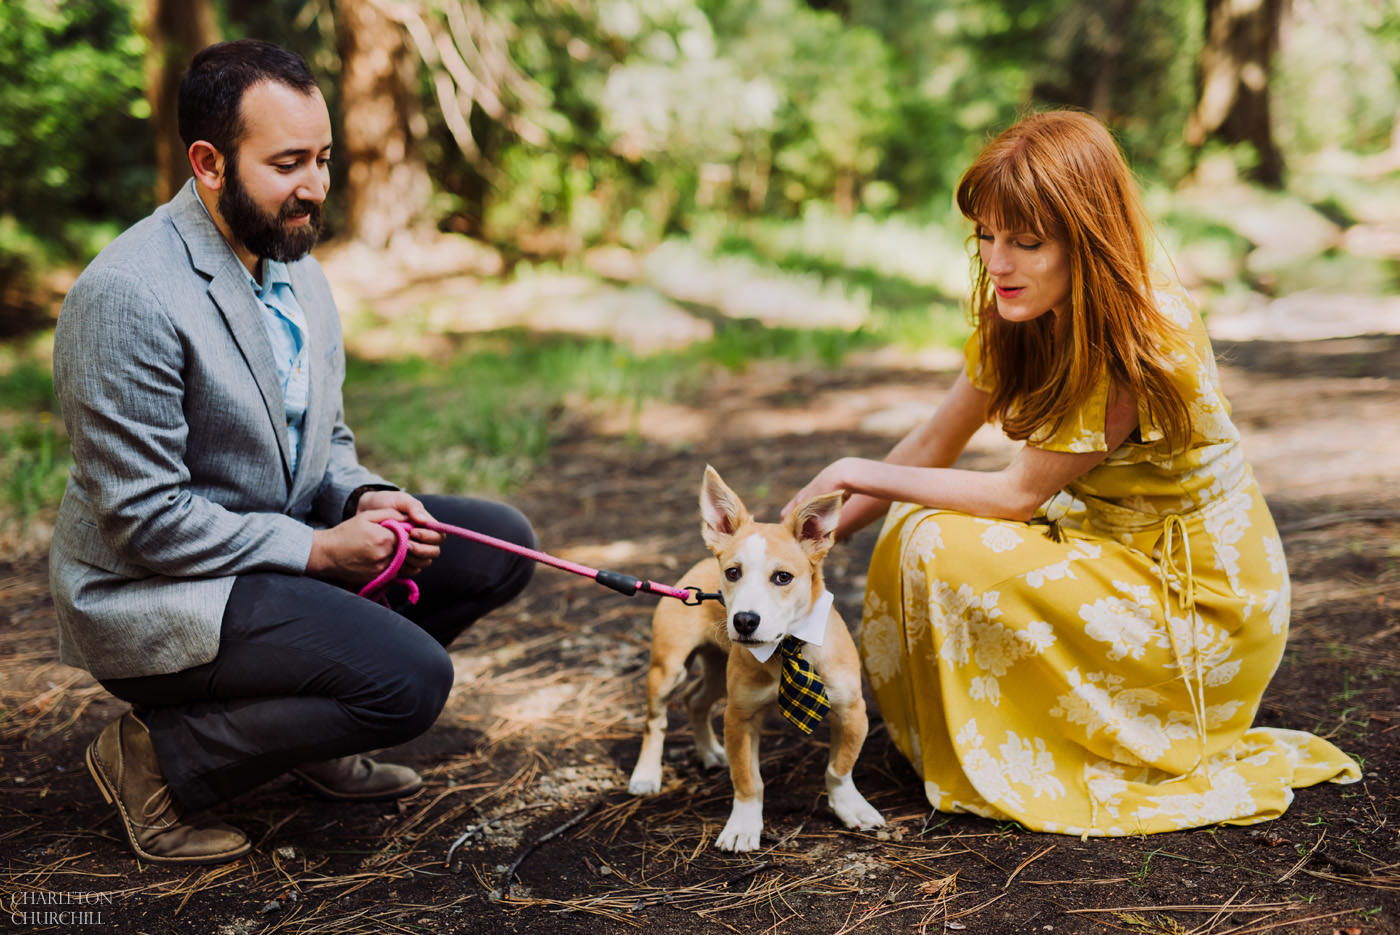 bringing a dog to your engagement photo session